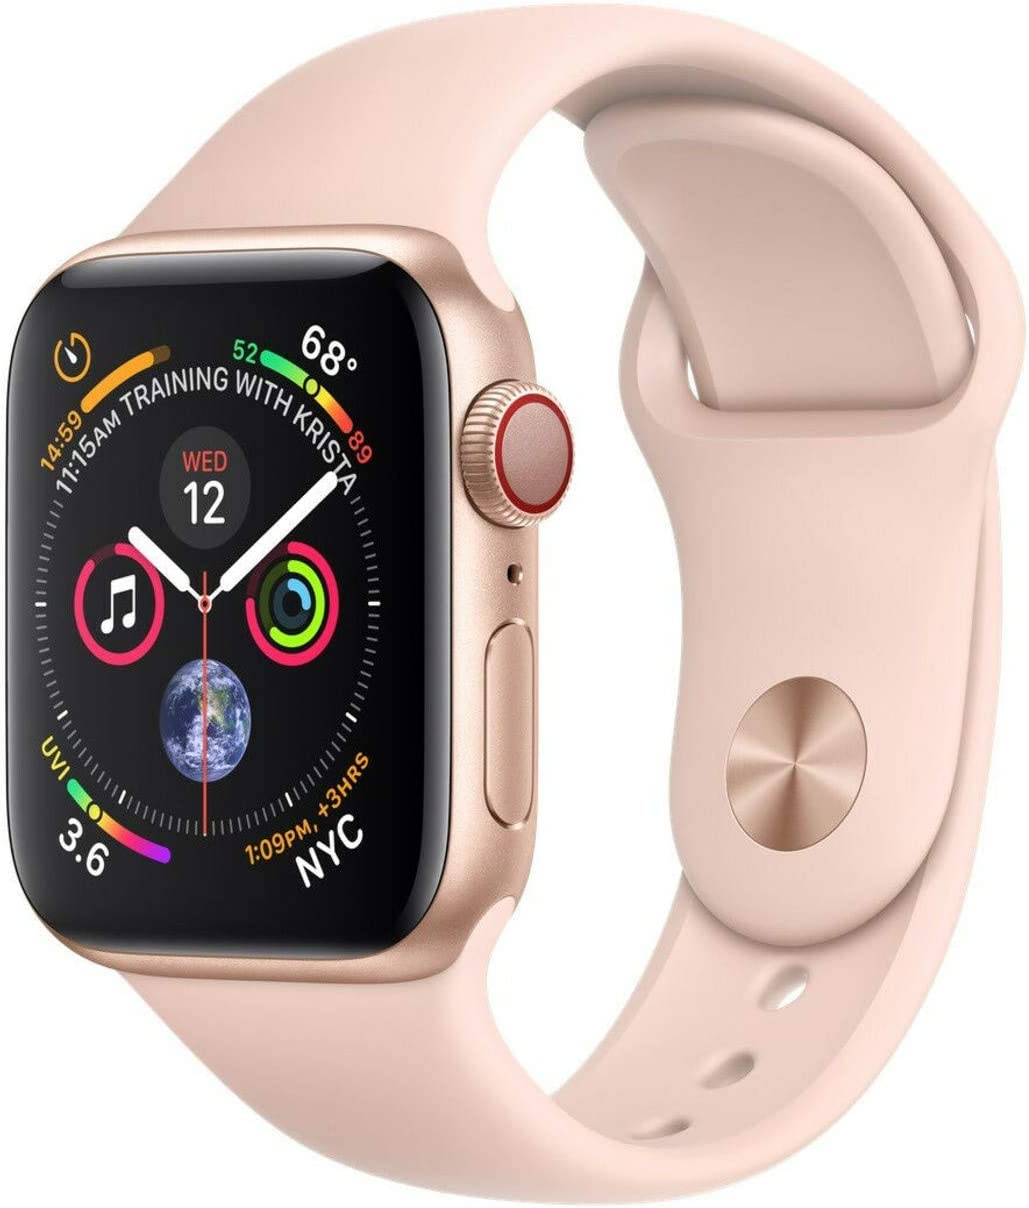 Apple Watch Series 4 (GPS + Cellular, 44MM) - Gold Aluminum Case with Pink Sand Sport Band (Renewed)